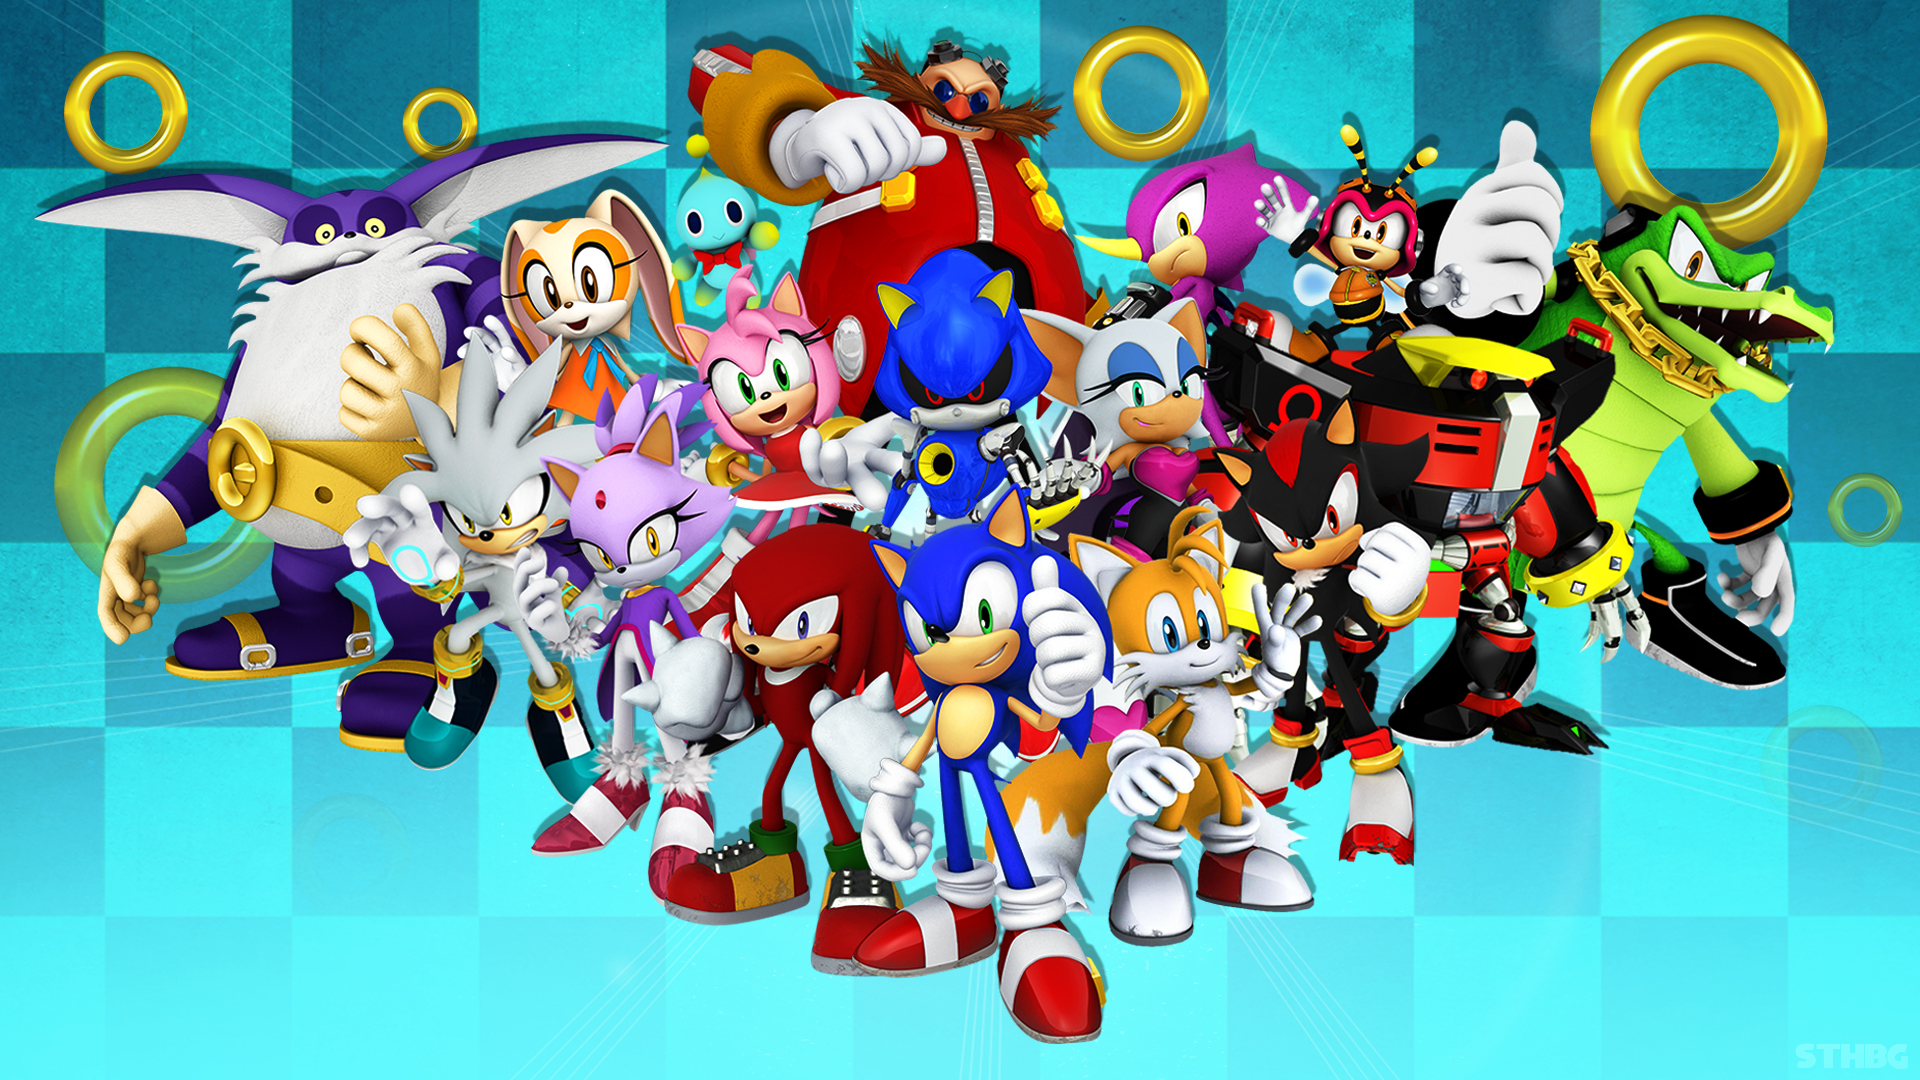 Sonic The Hedgehog And Friends - Wallpaper by SonicTheHedgehogBG ...